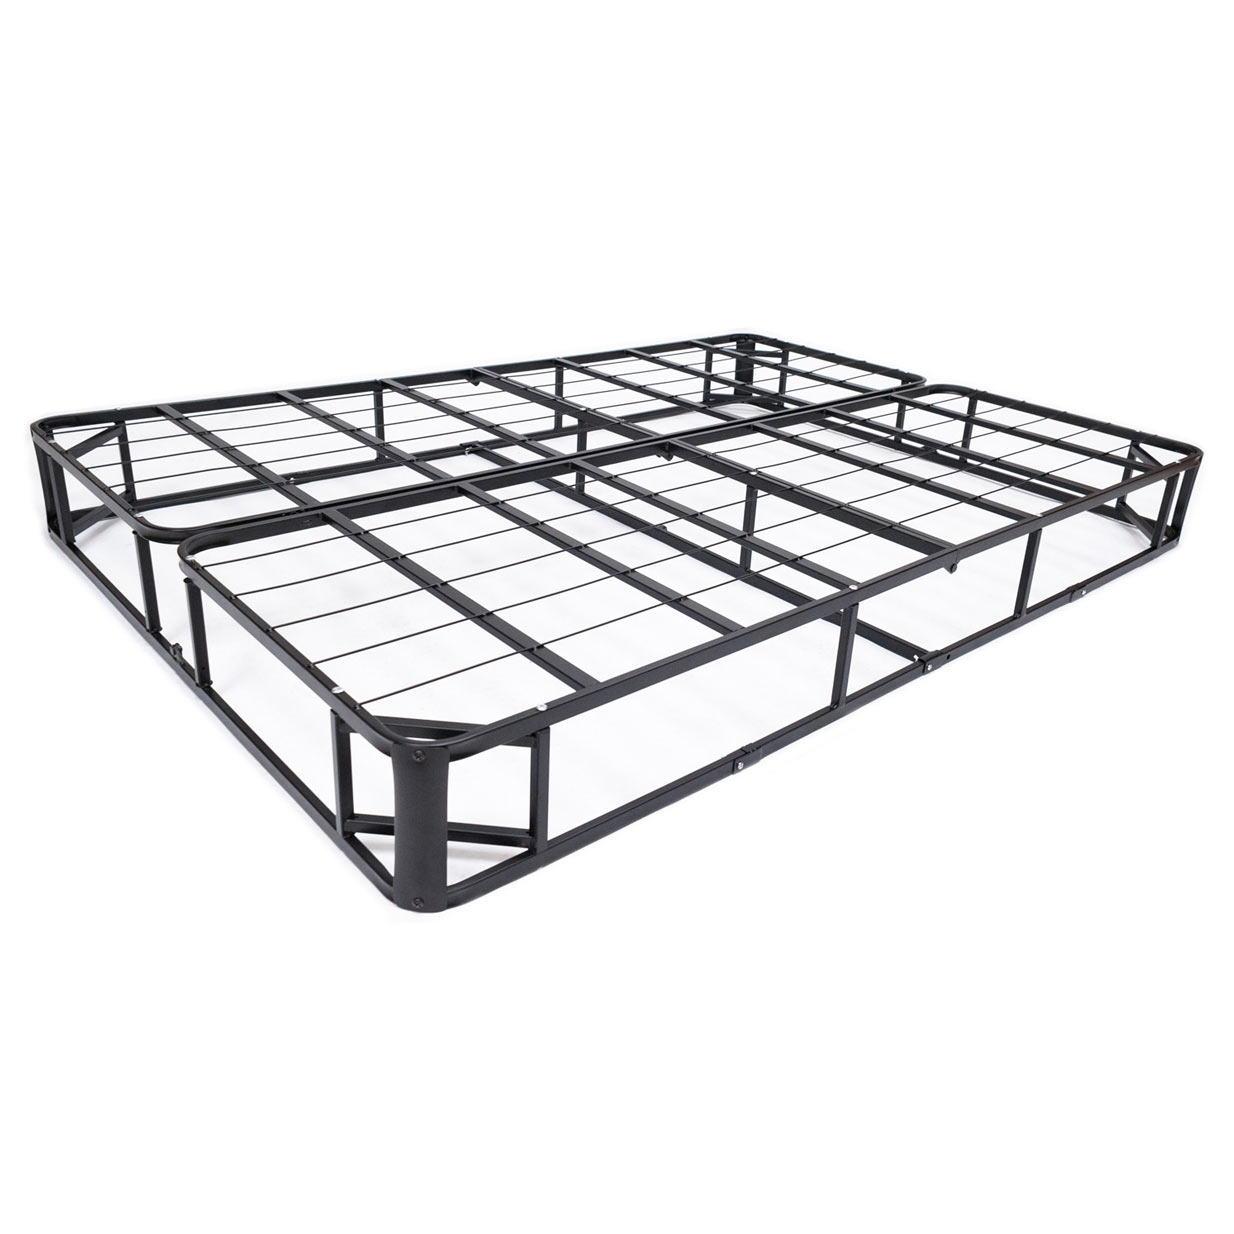 King Size Bed Frame With Drawers Adjule Box Spring